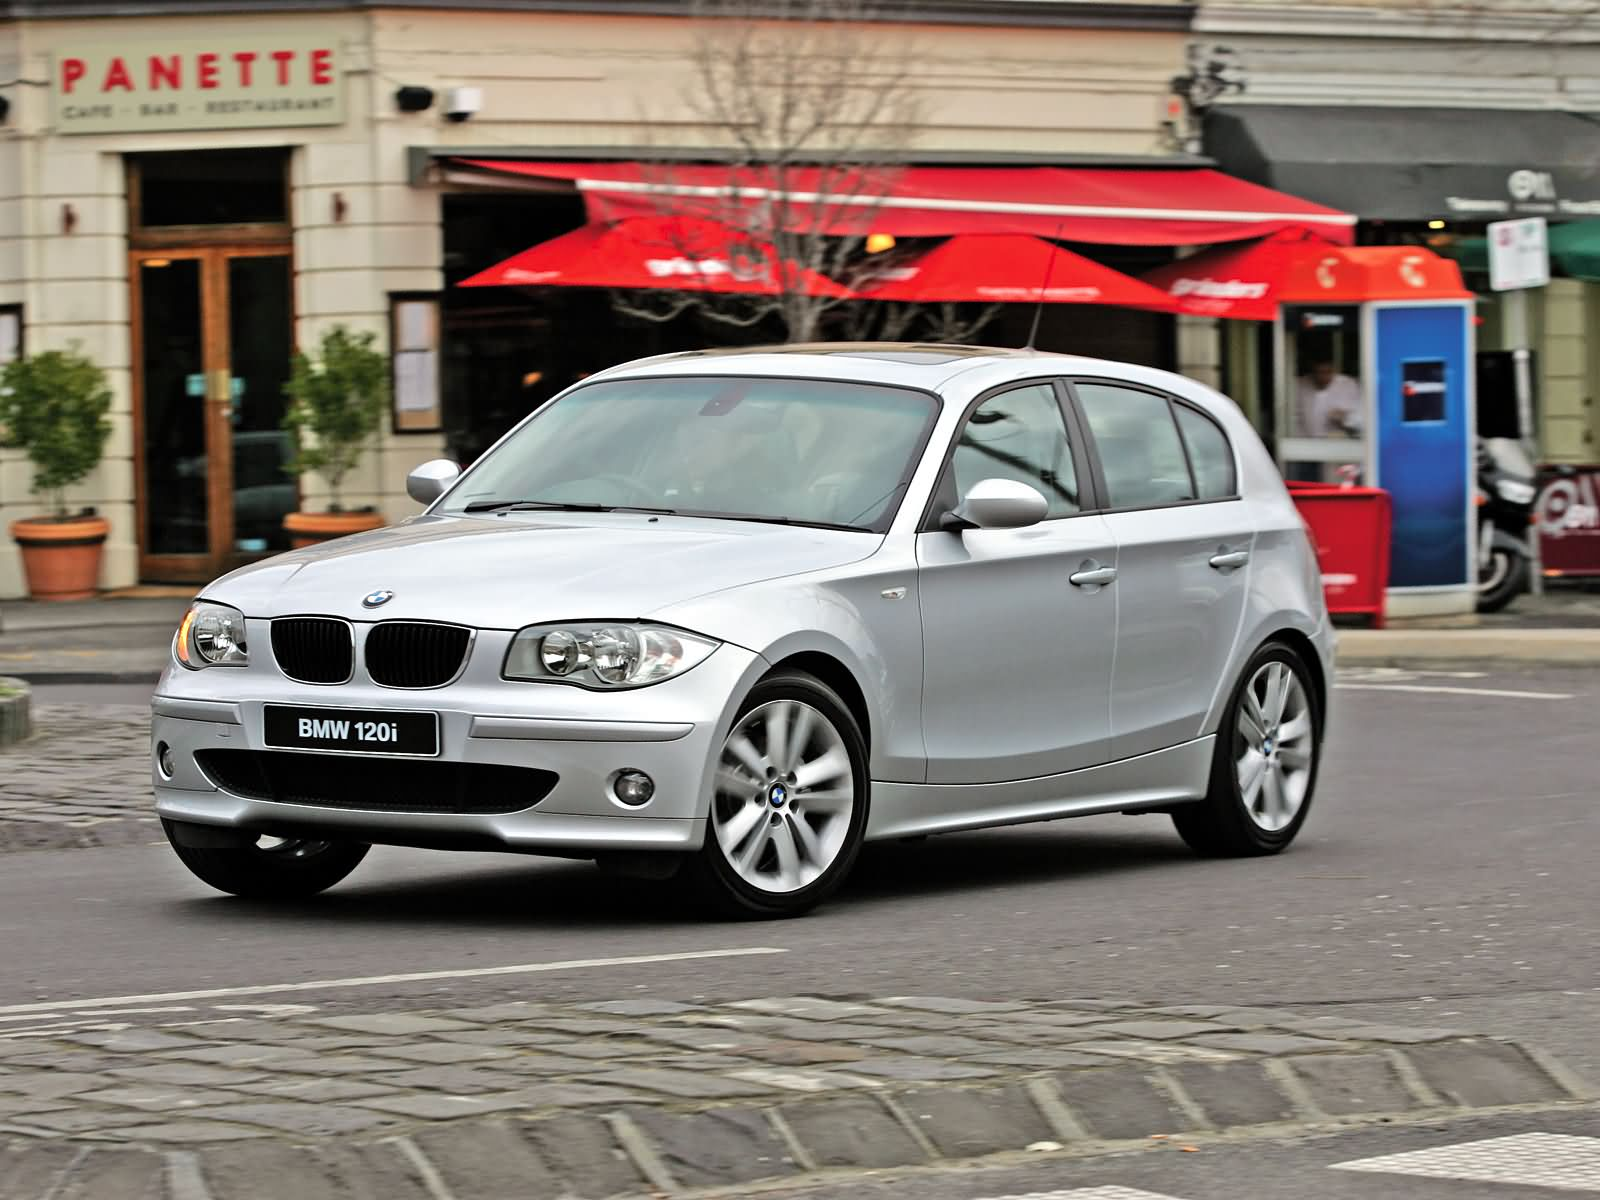 bmw 1 series 5 door e87 picture 14966 bmw photo gallery. Black Bedroom Furniture Sets. Home Design Ideas